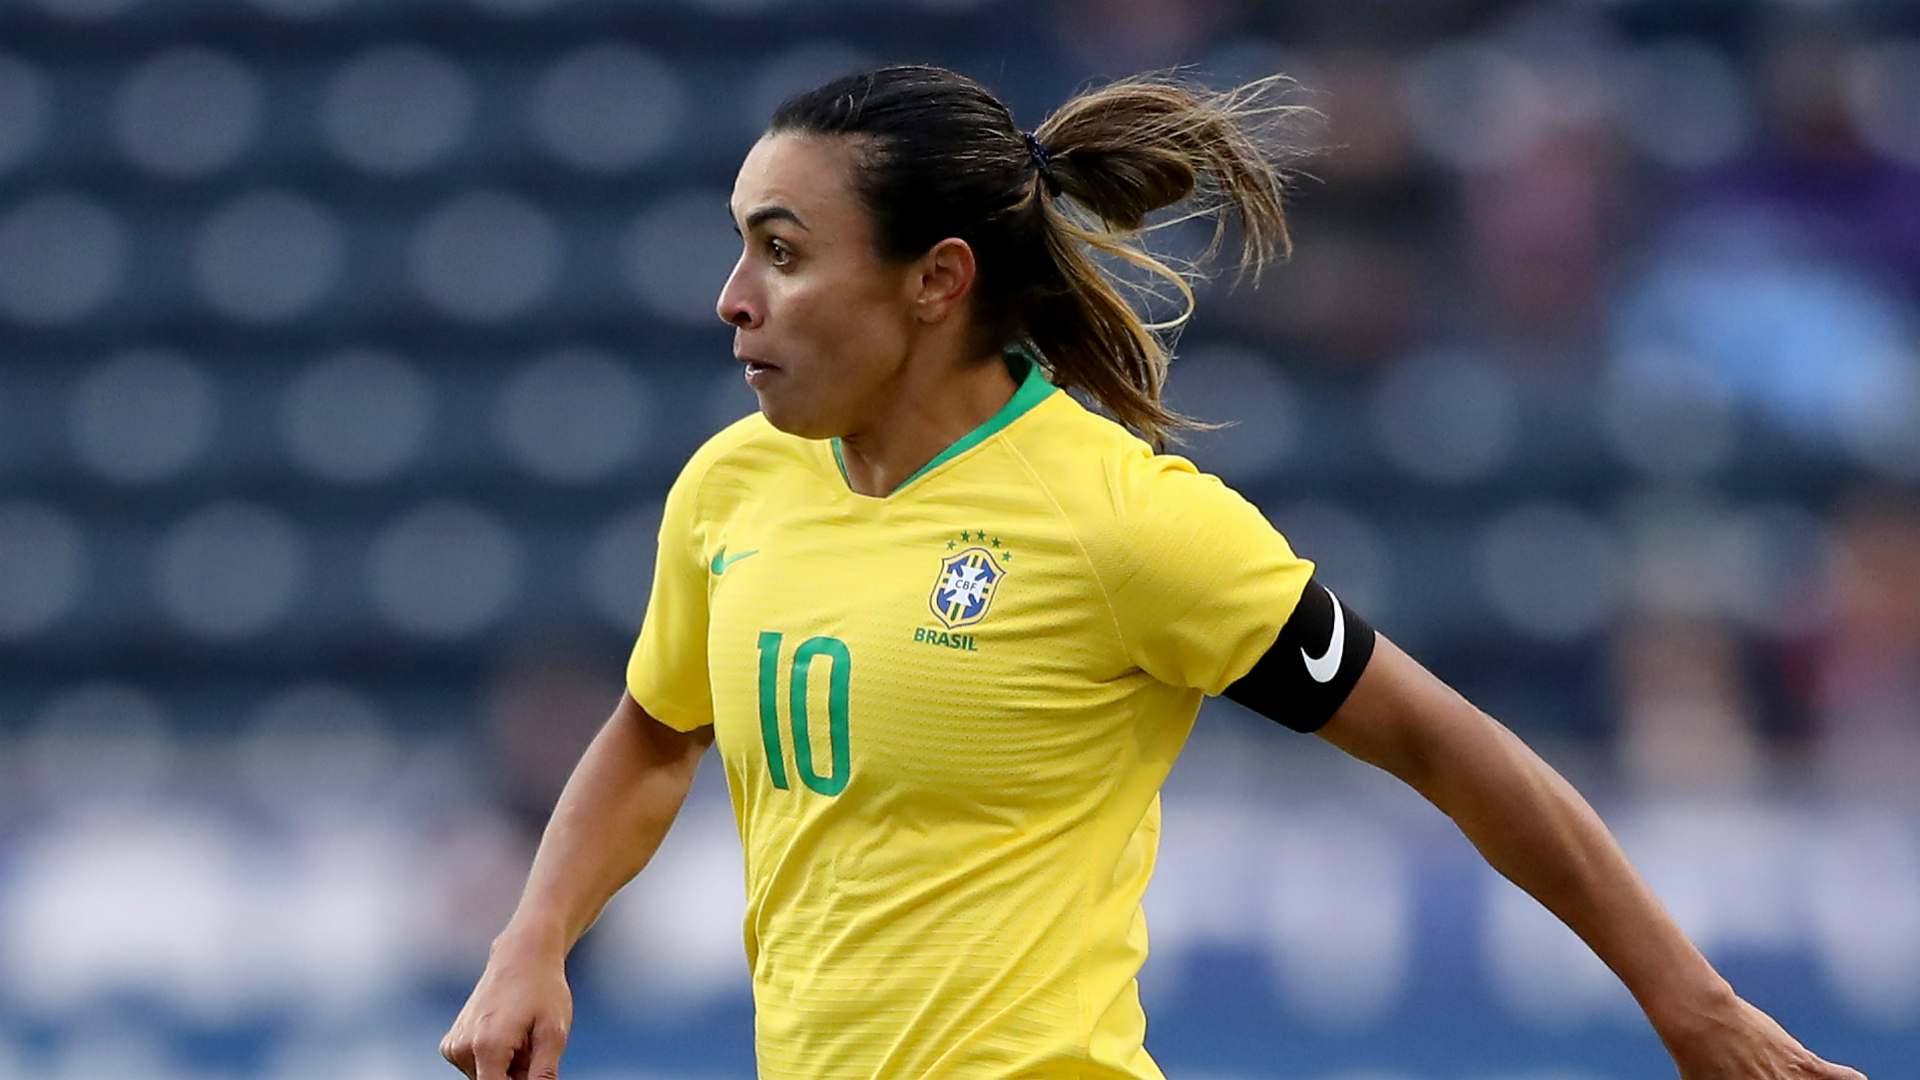 Cristiane scores hat trick in Brazil's win over Jamaica